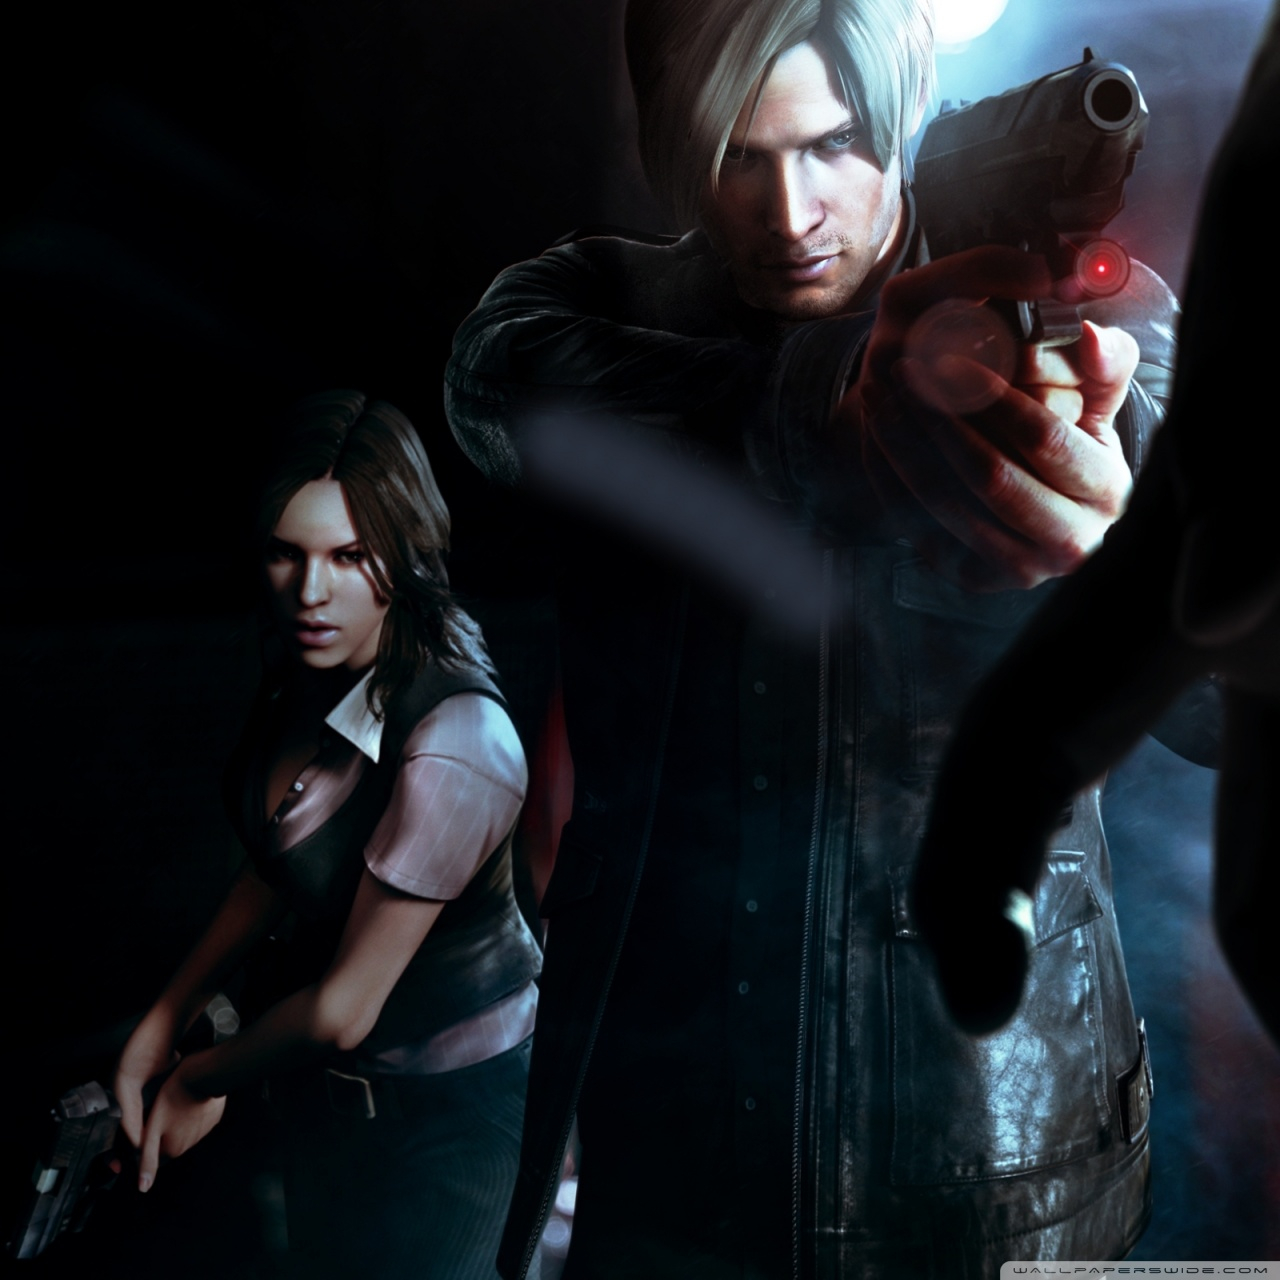 resident evil 6 2012 video game wallpapers